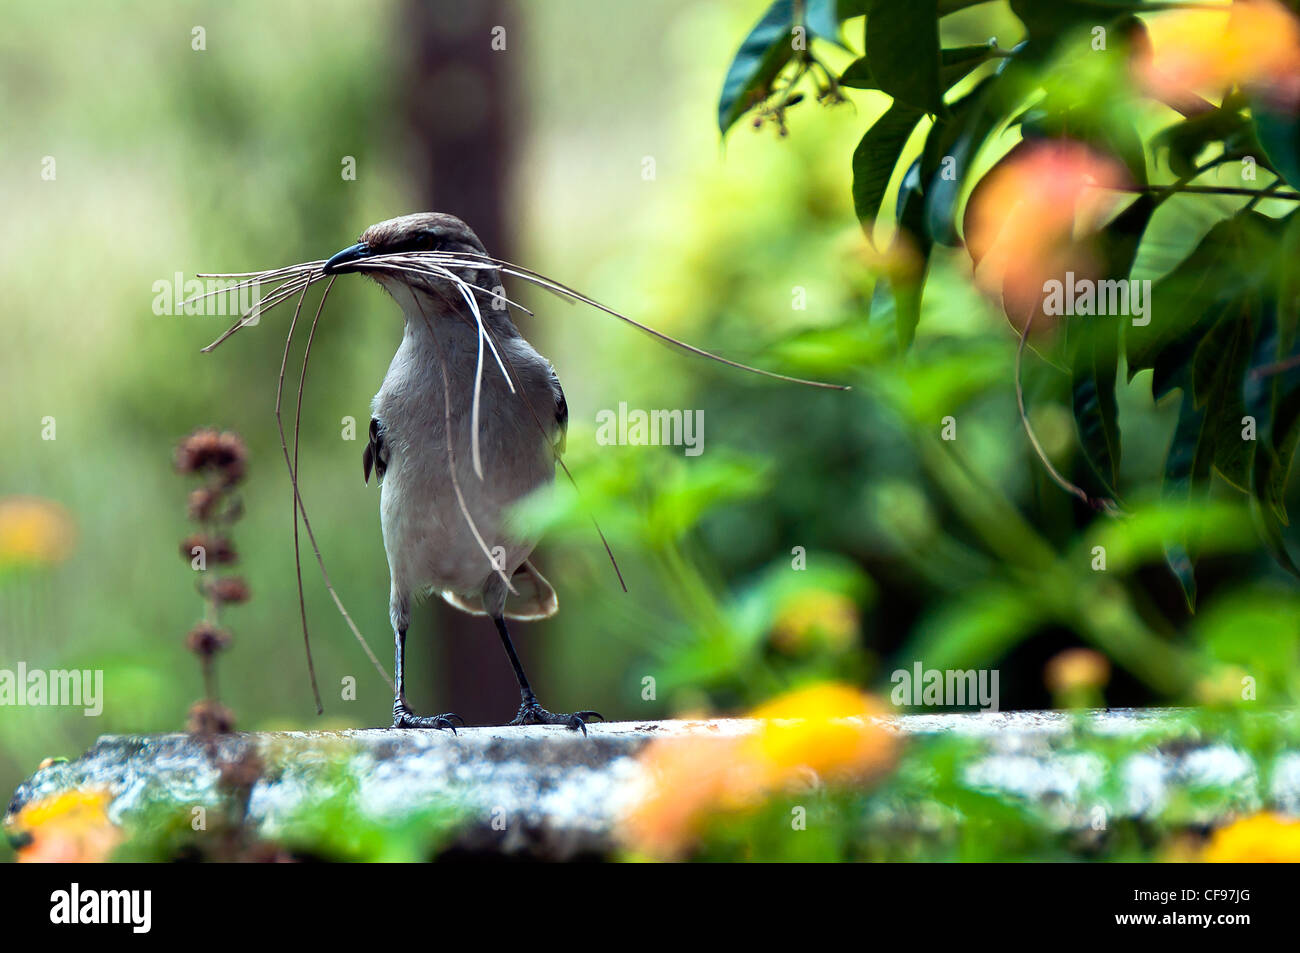 Mockingbirds are a group of New World passerine birds from the Mimidae family. - Stock Image